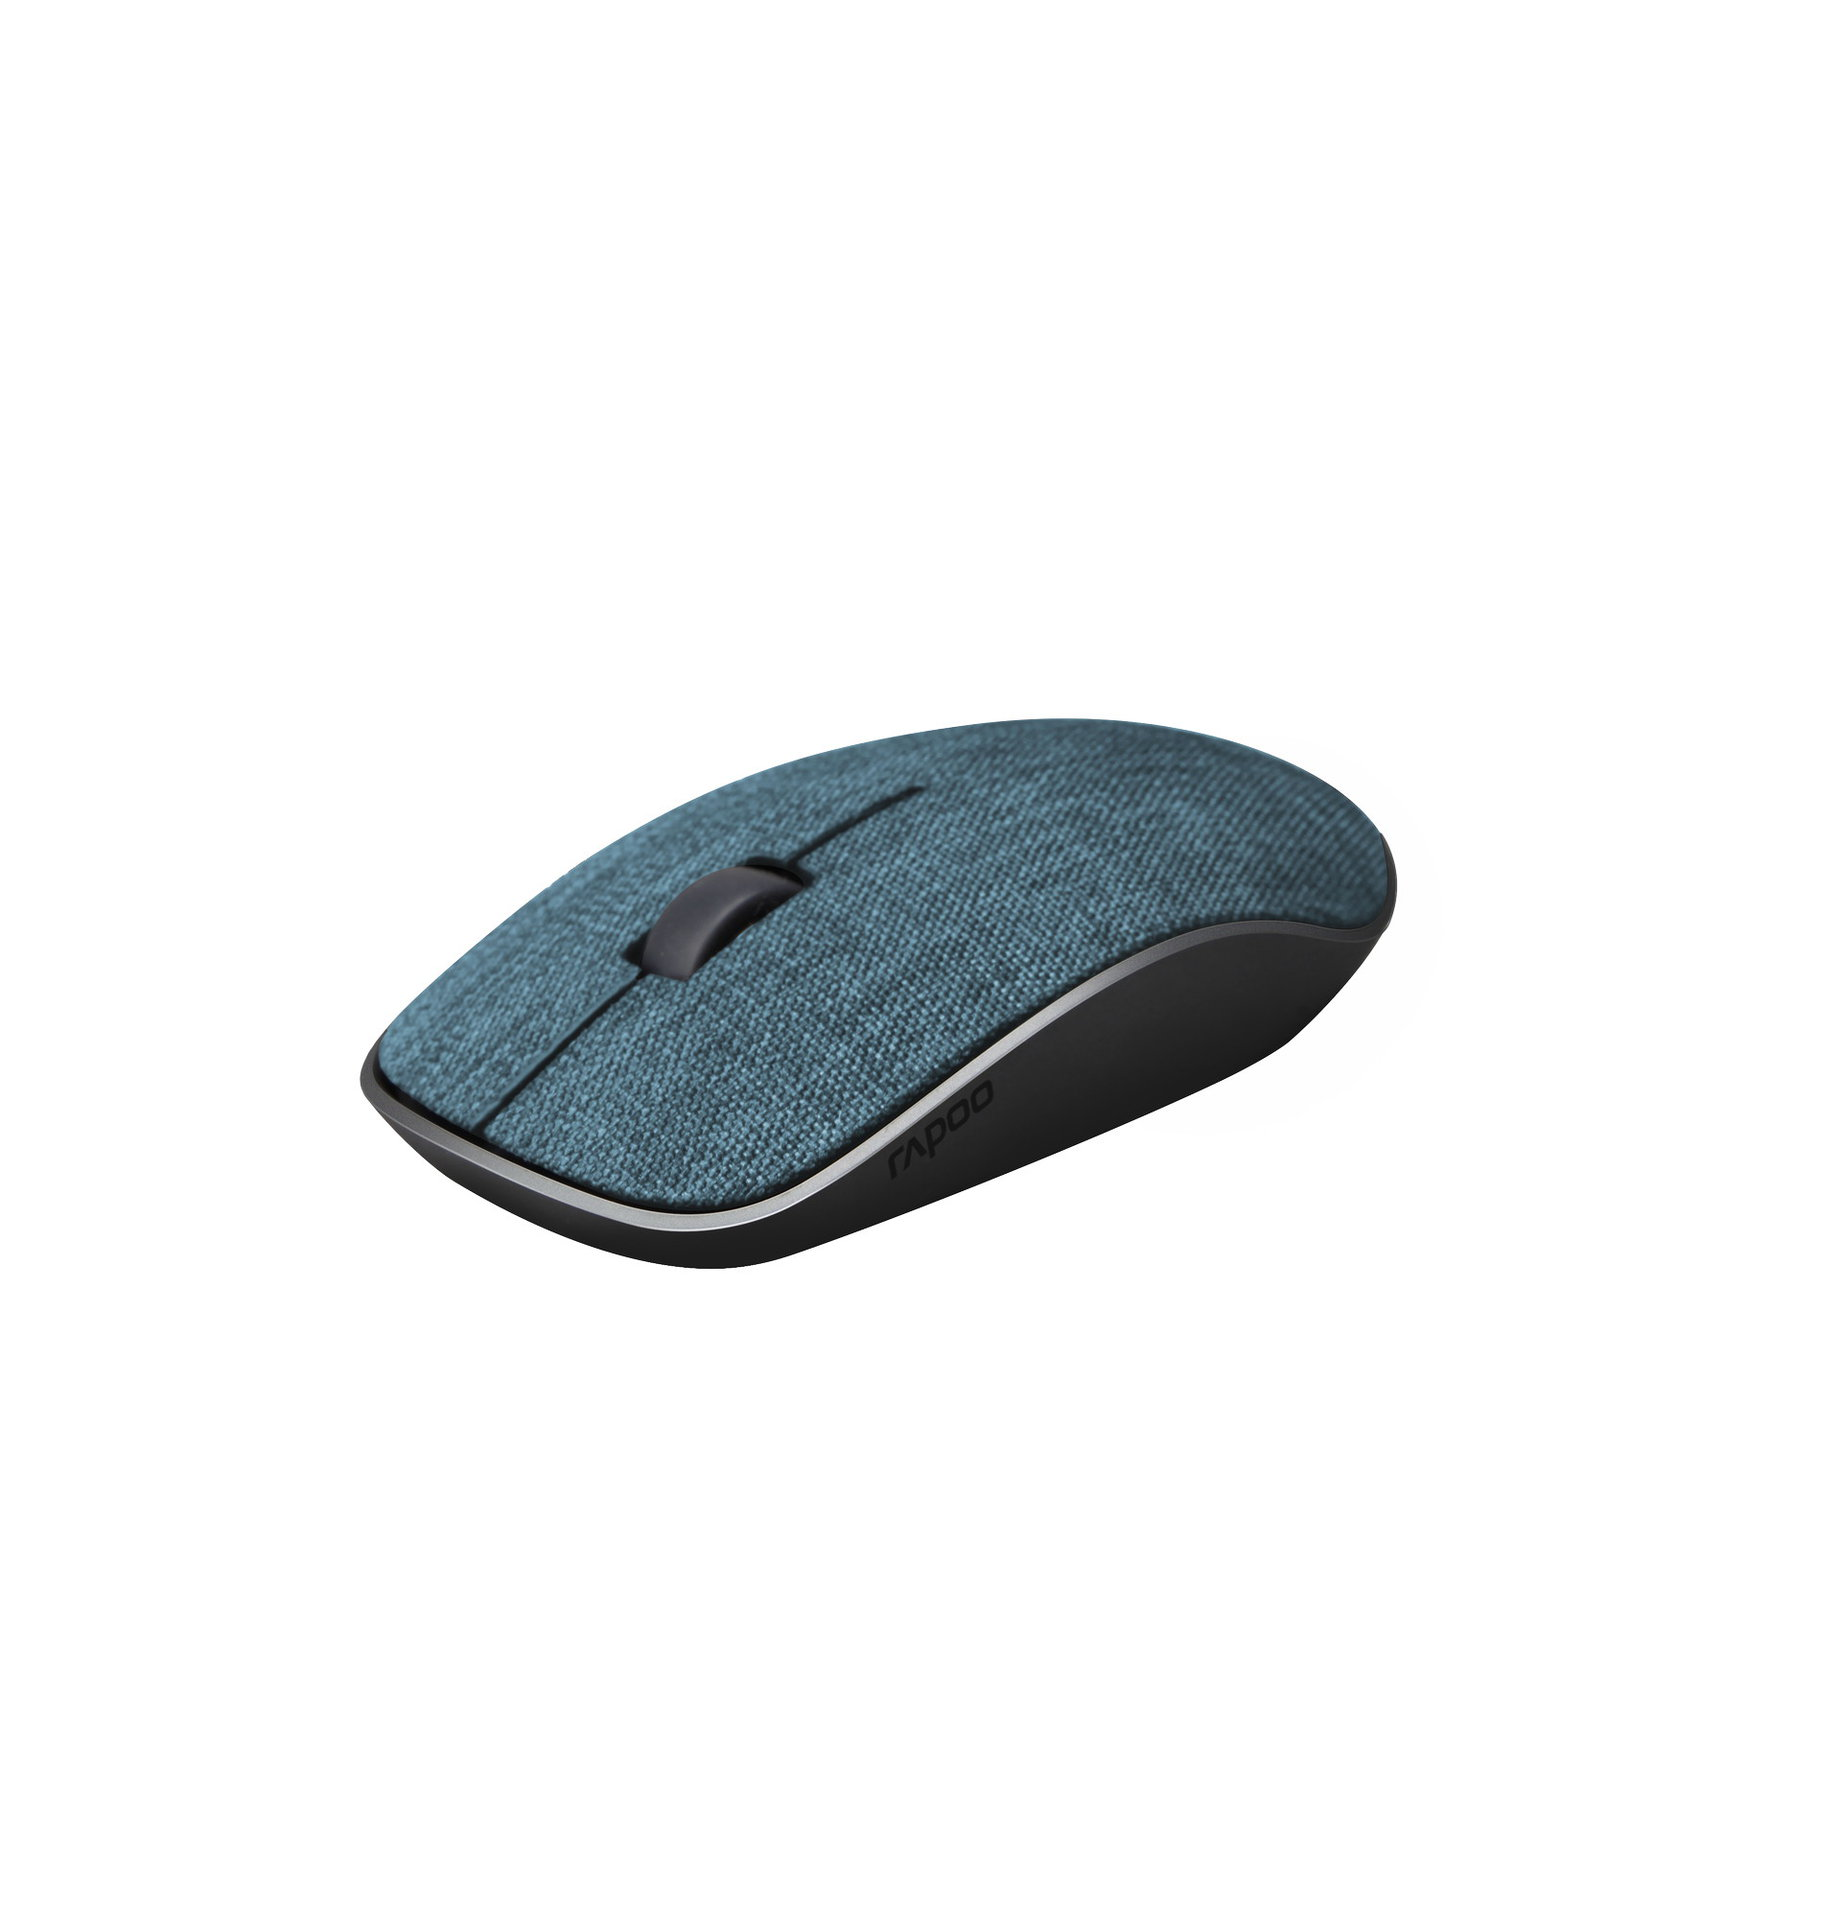 Rapoo 3510+ Wireless Optical Mouse white Blue textil